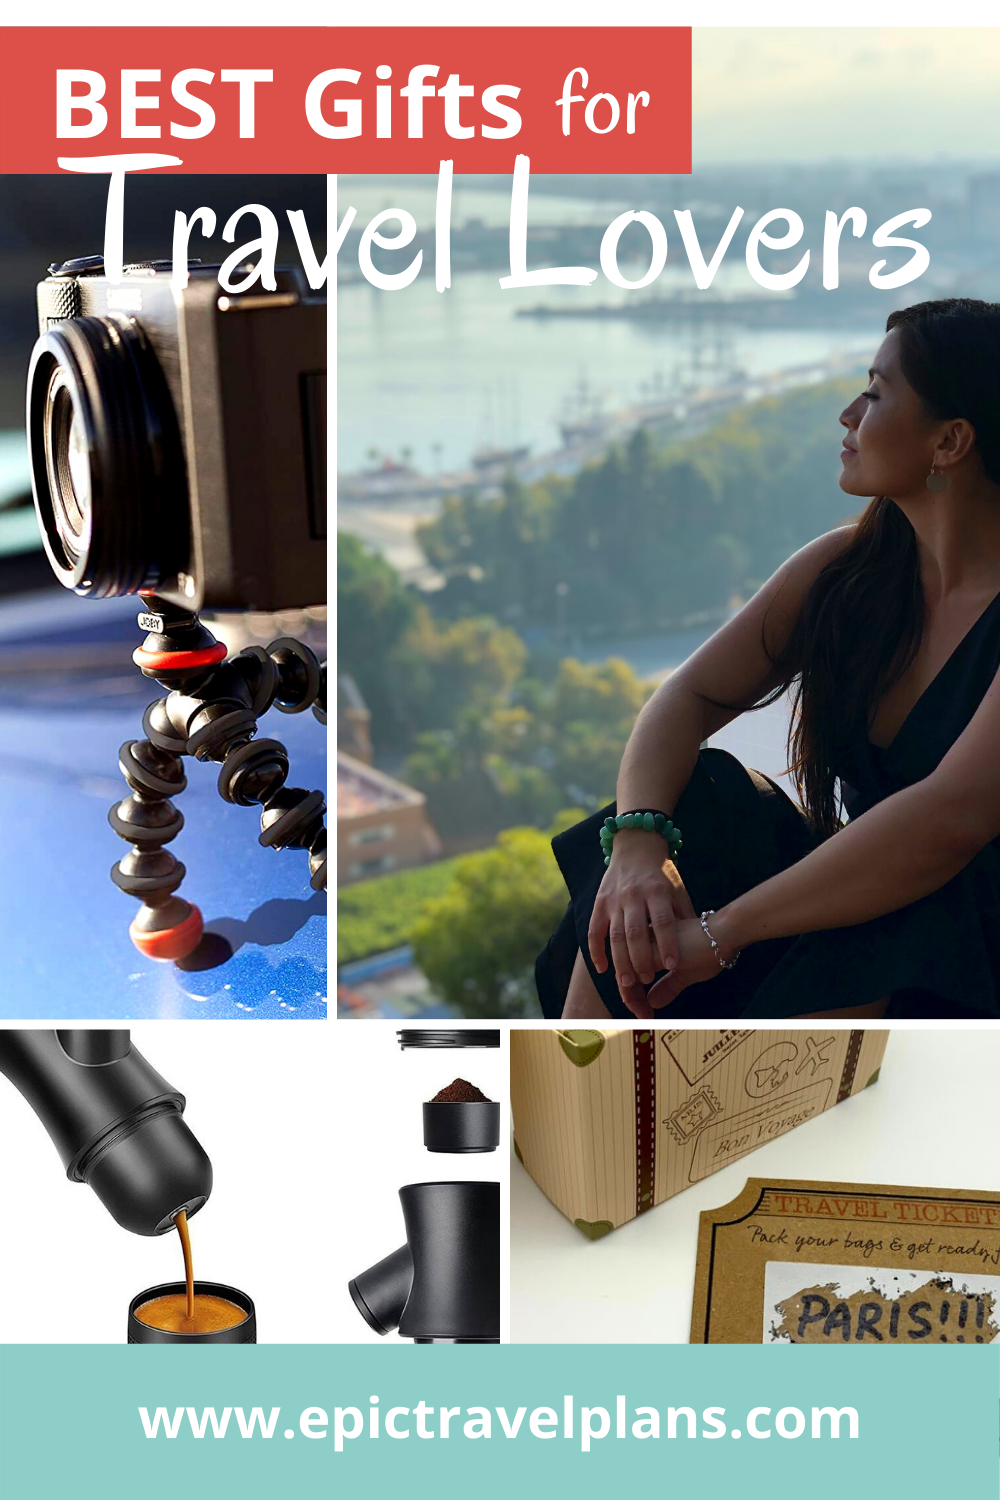 Best gifts for travel lovers, travel gift ideas, travel gadgets